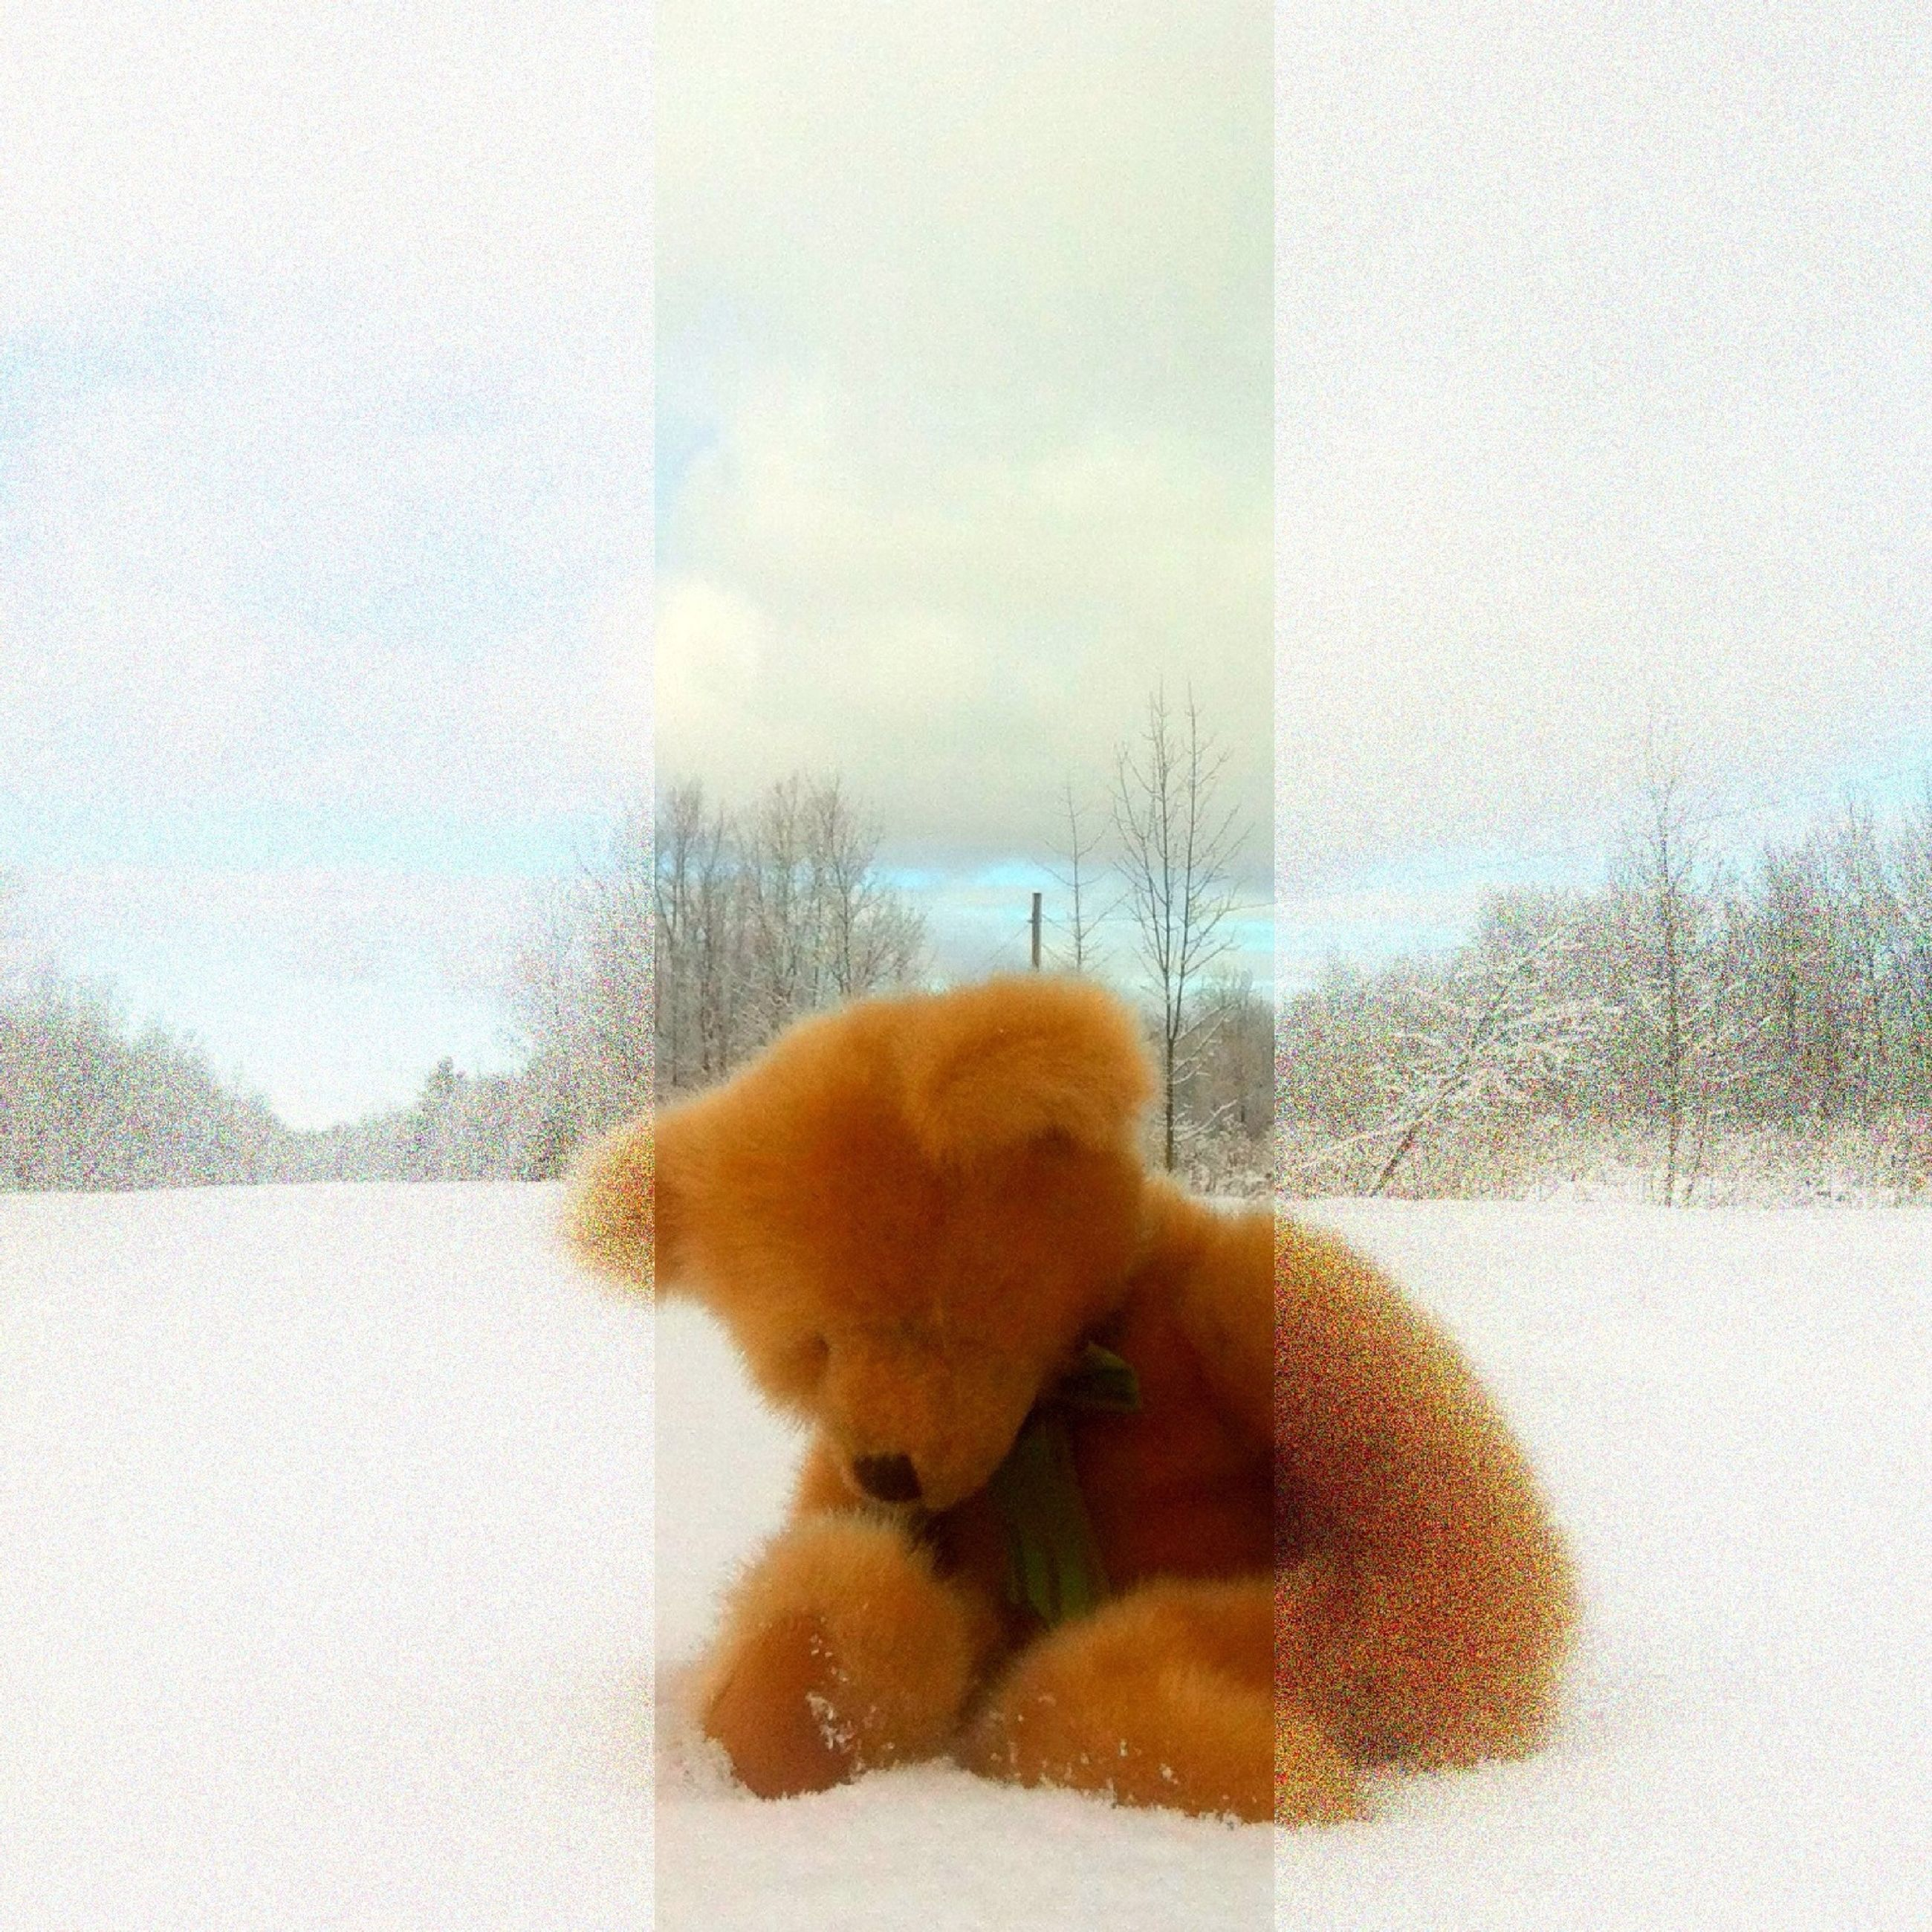 domestic animals, pets, cold temperature, window, winter, dog, season, weather, glass - material, one animal, sky, snow, mammal, animal themes, transparent, reflection, nature, tree, day, indoors